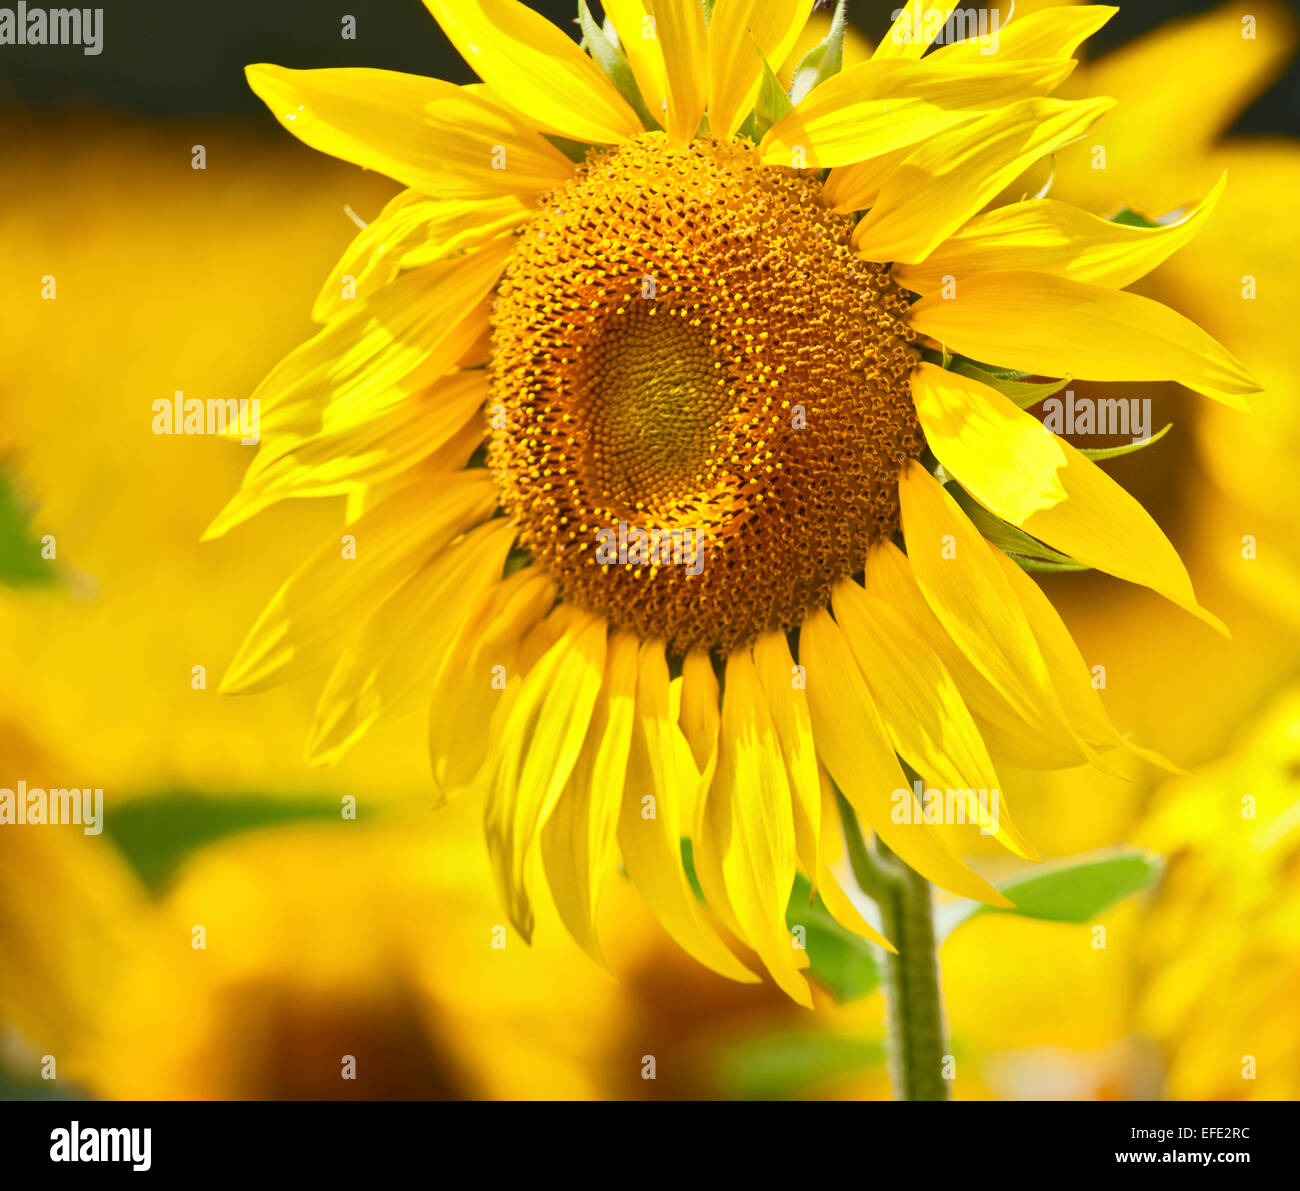 Bright yellow sunflower in a field in France - Stock Image